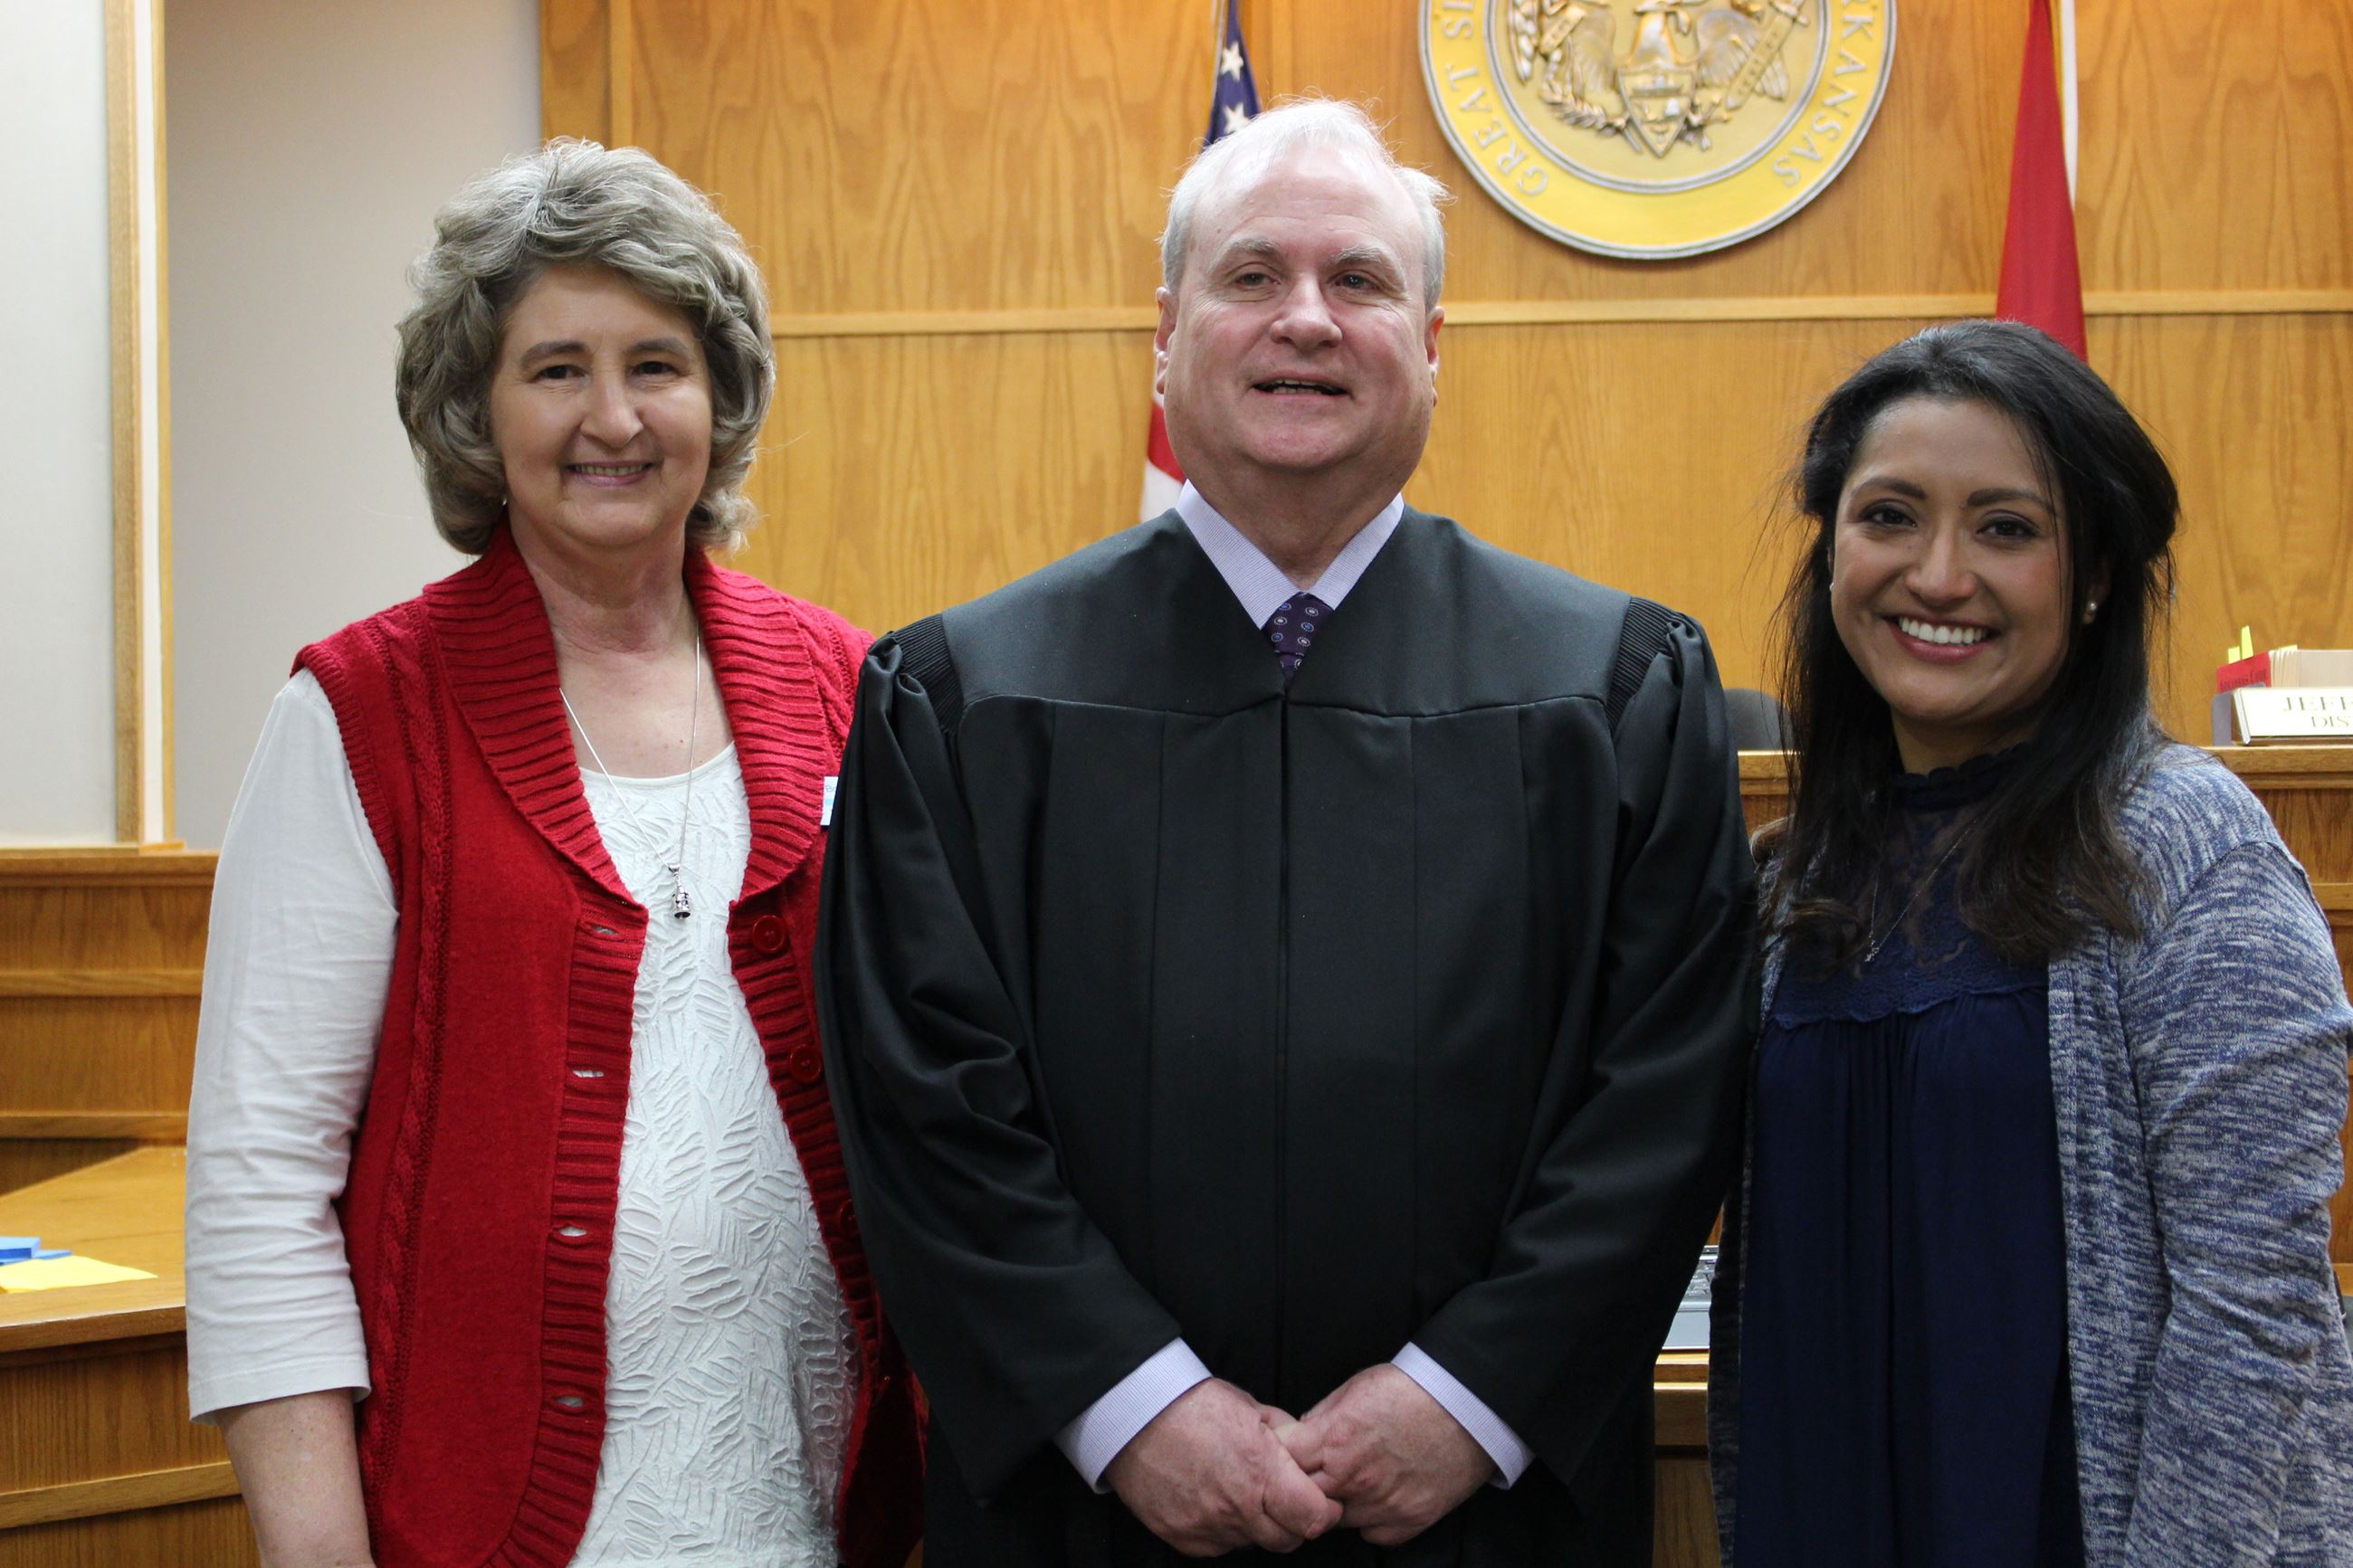 Julia Ritter was sworn in by Judge Harper as Springdale District Court's new Chief Deputy Clerk.